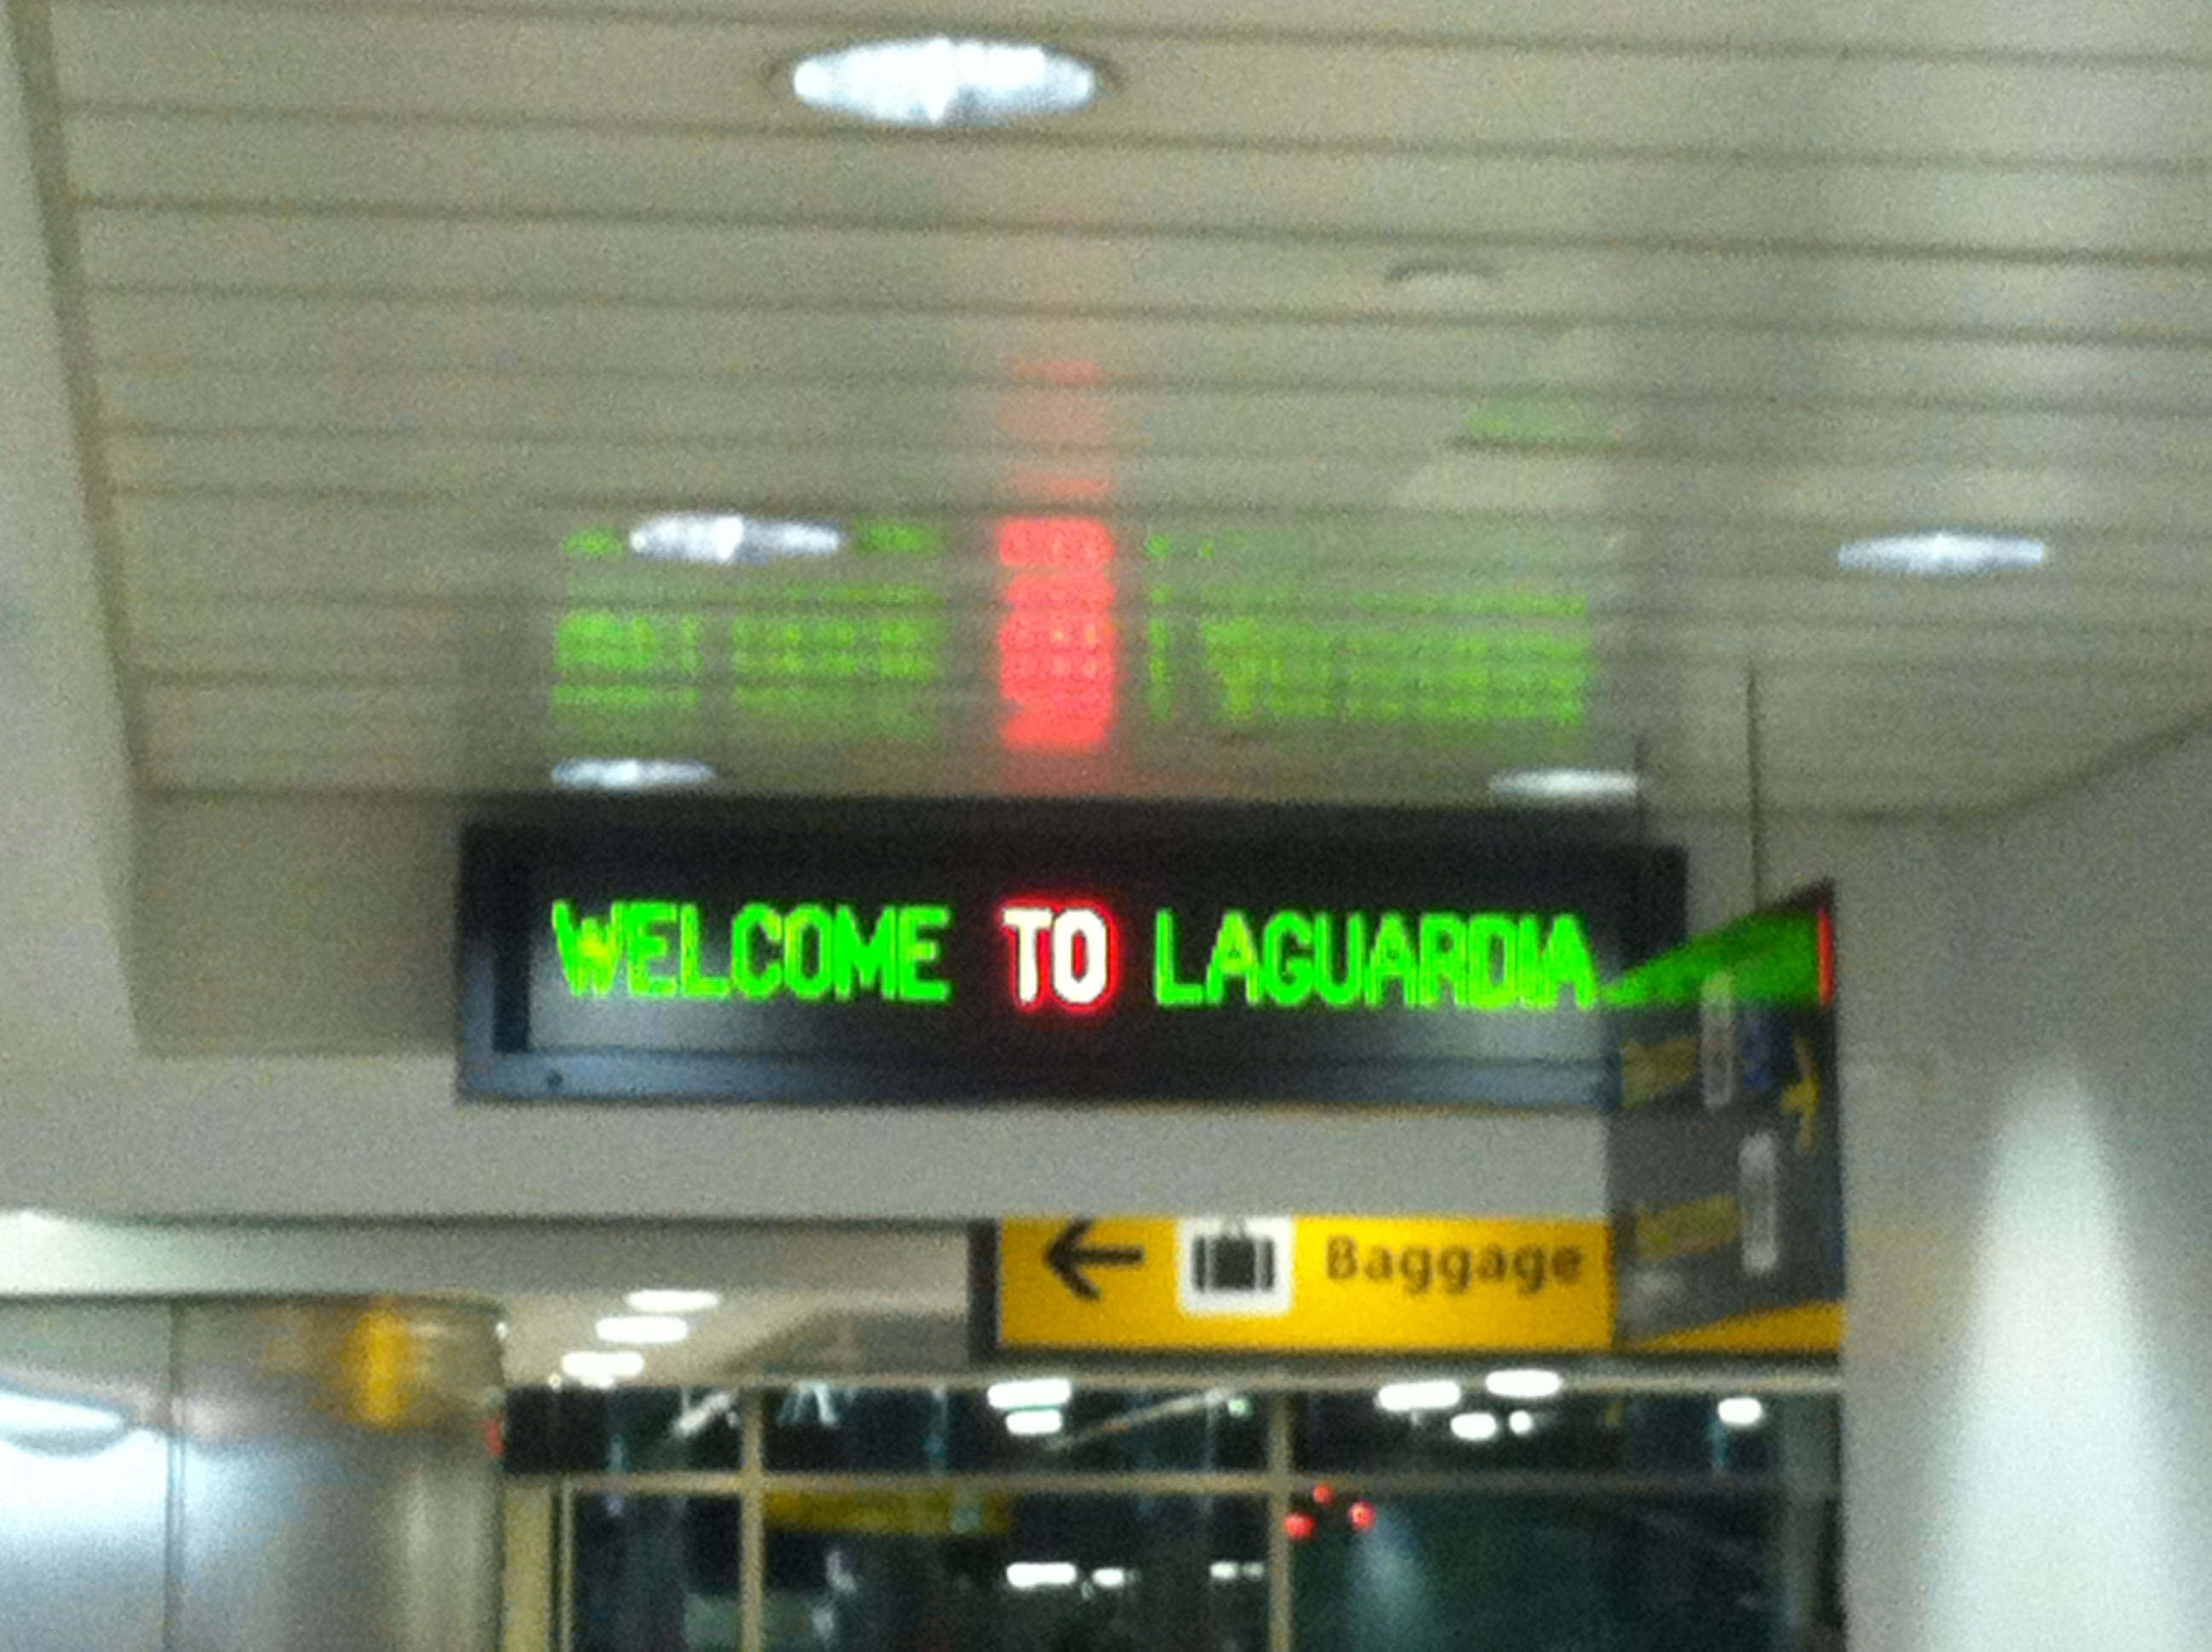 Digital Welcome to Laguardia sign in New York